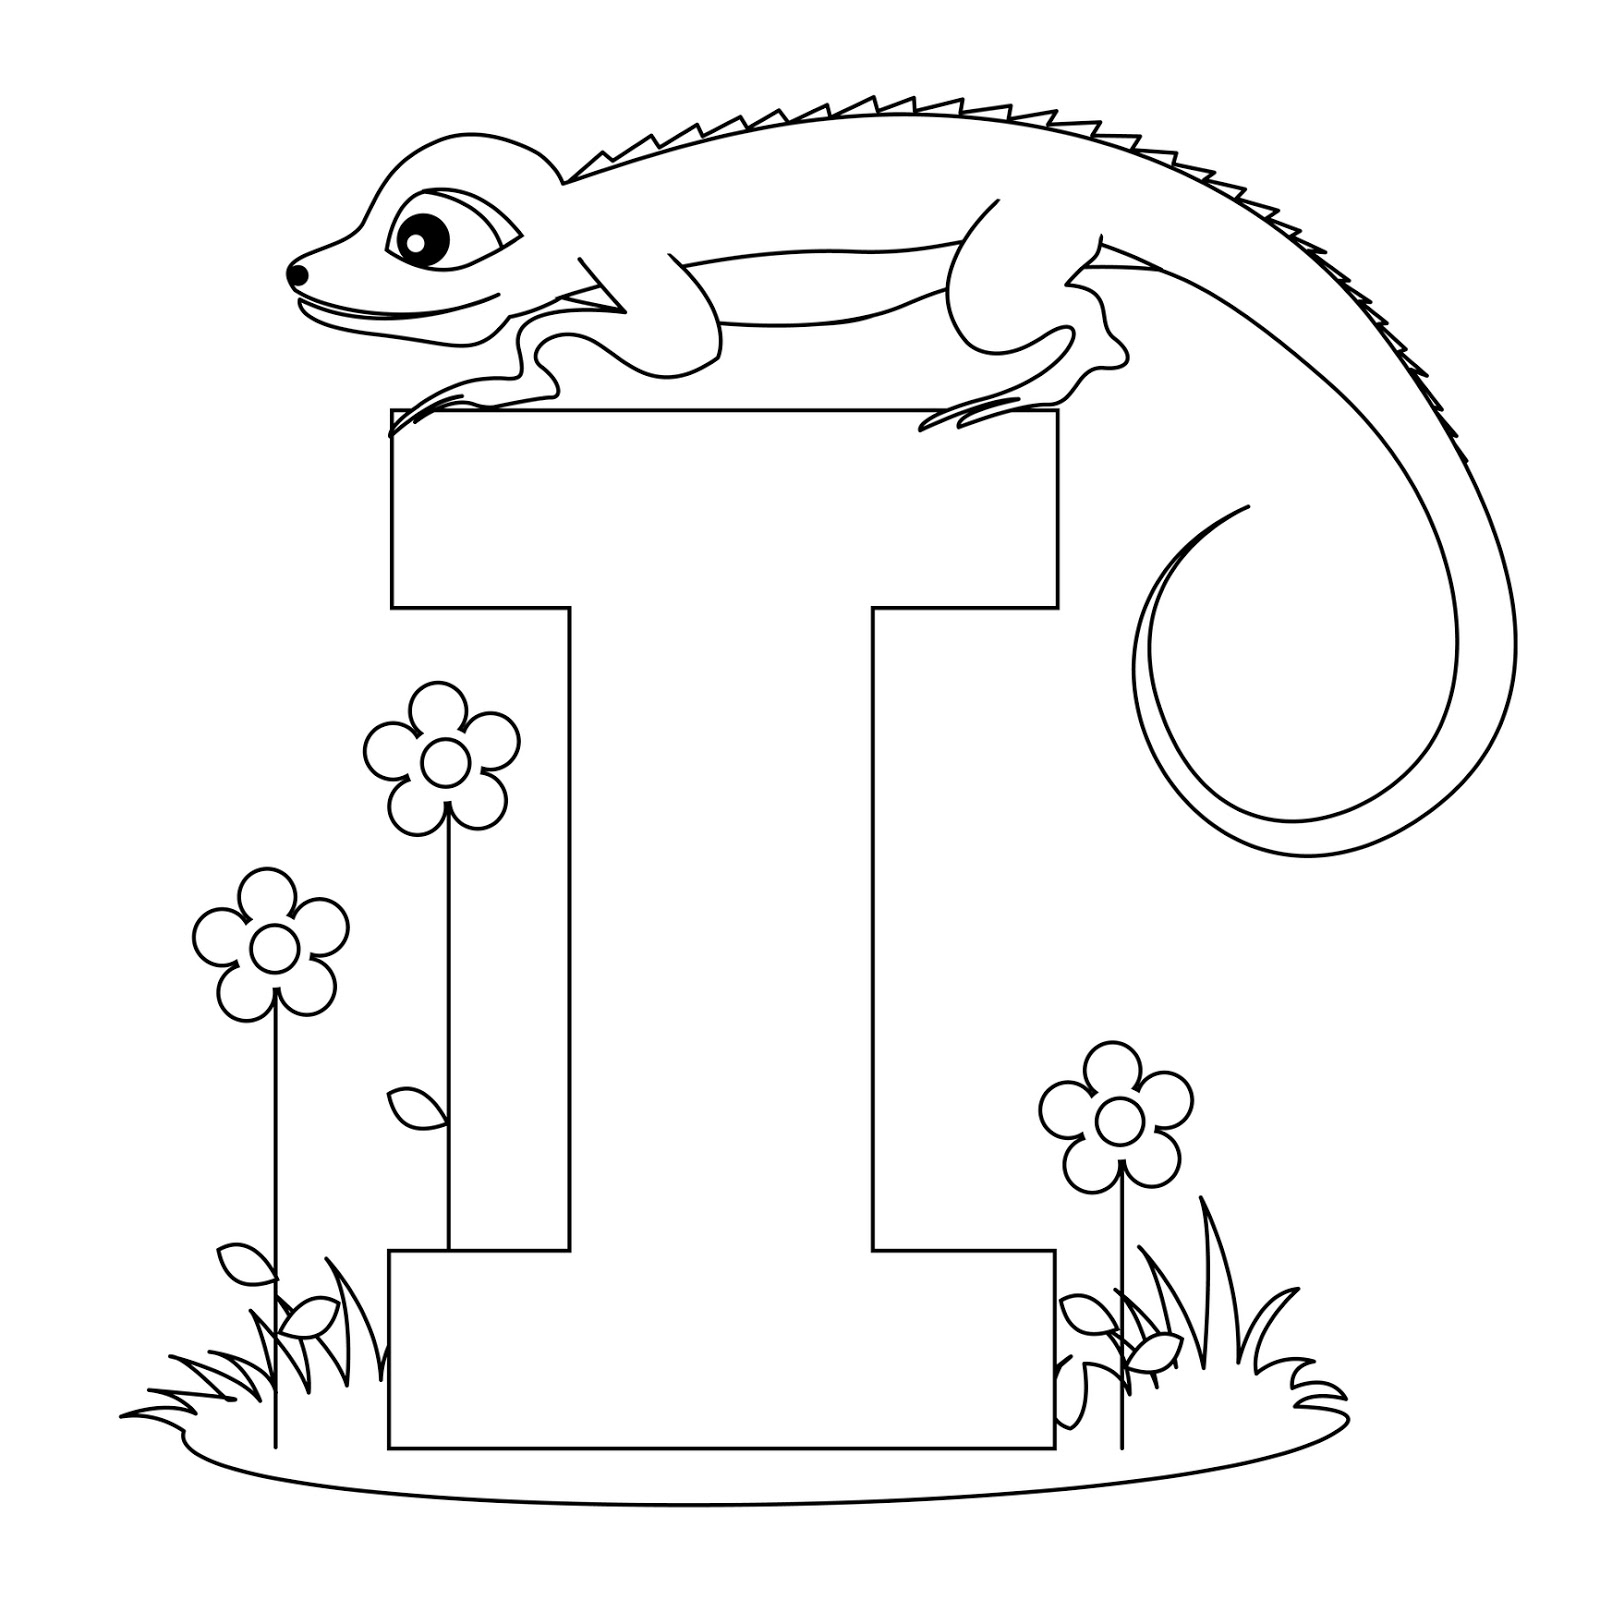 alfabet coloring pages - photo#28